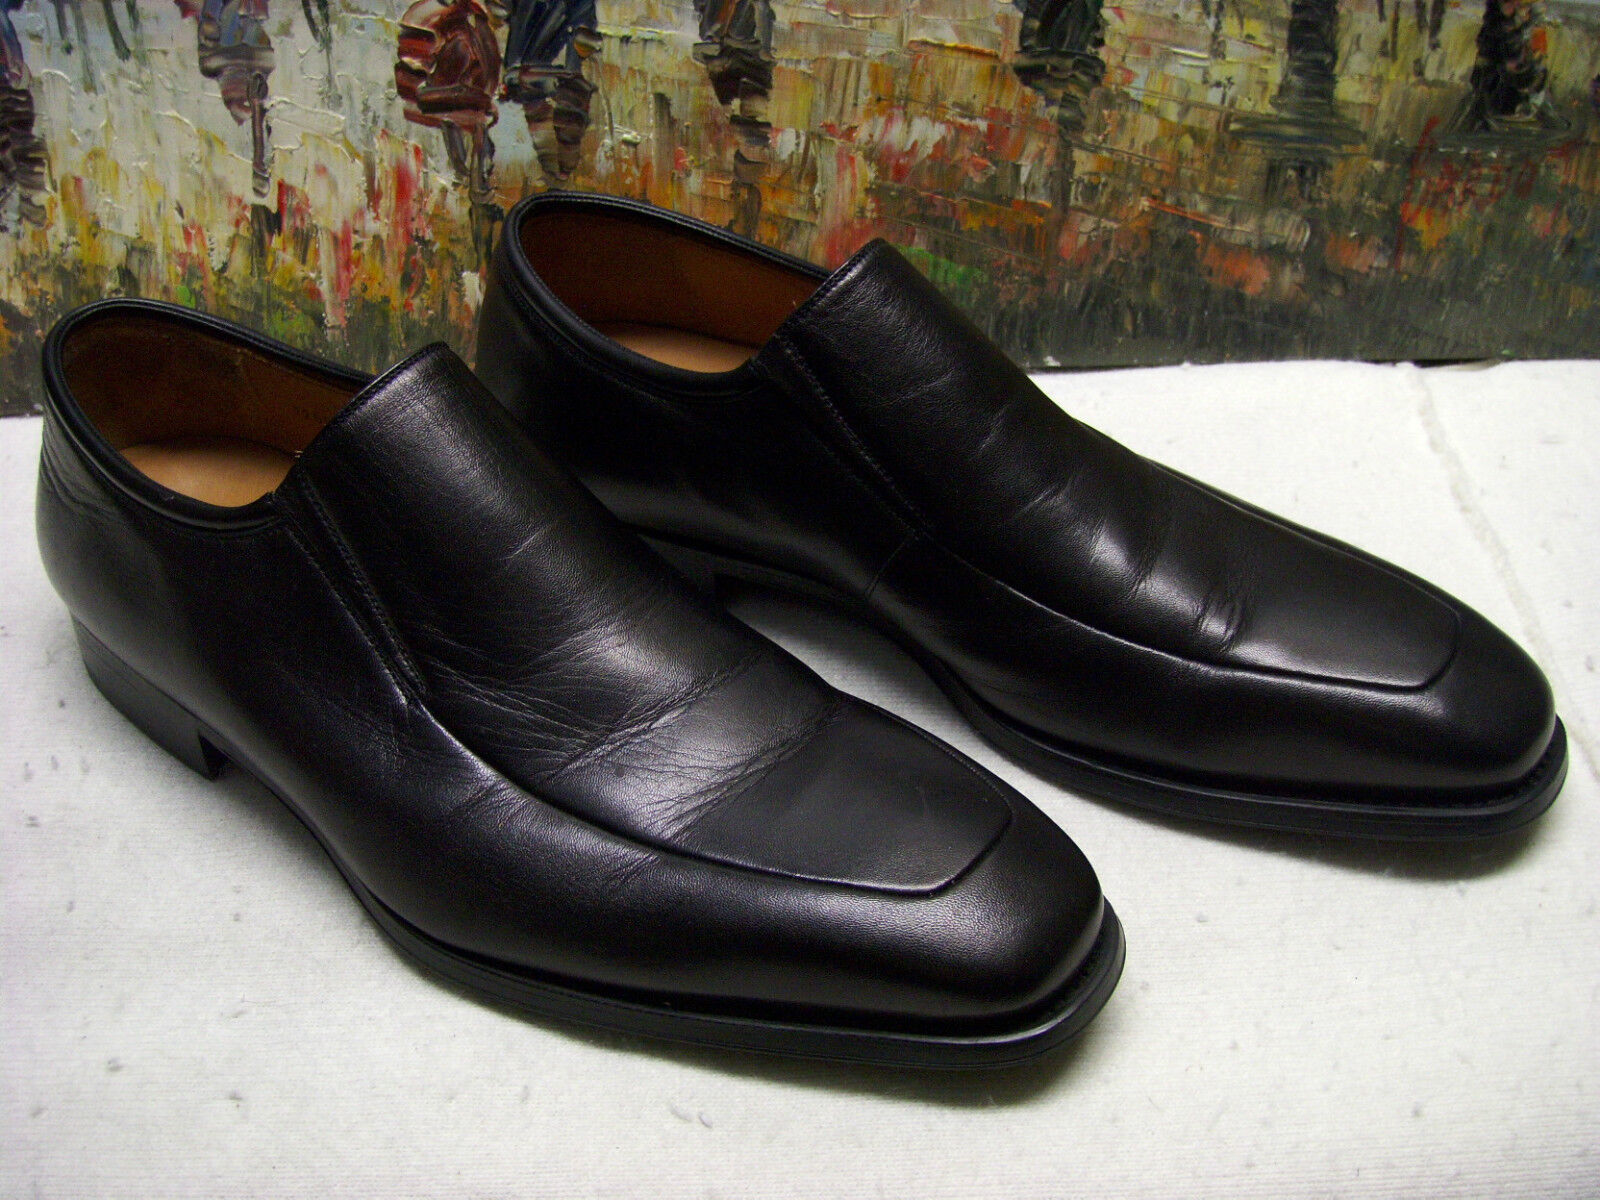 Magnanni 'Dominguez' Slip-On Loafers - Talla 11.5D -  225